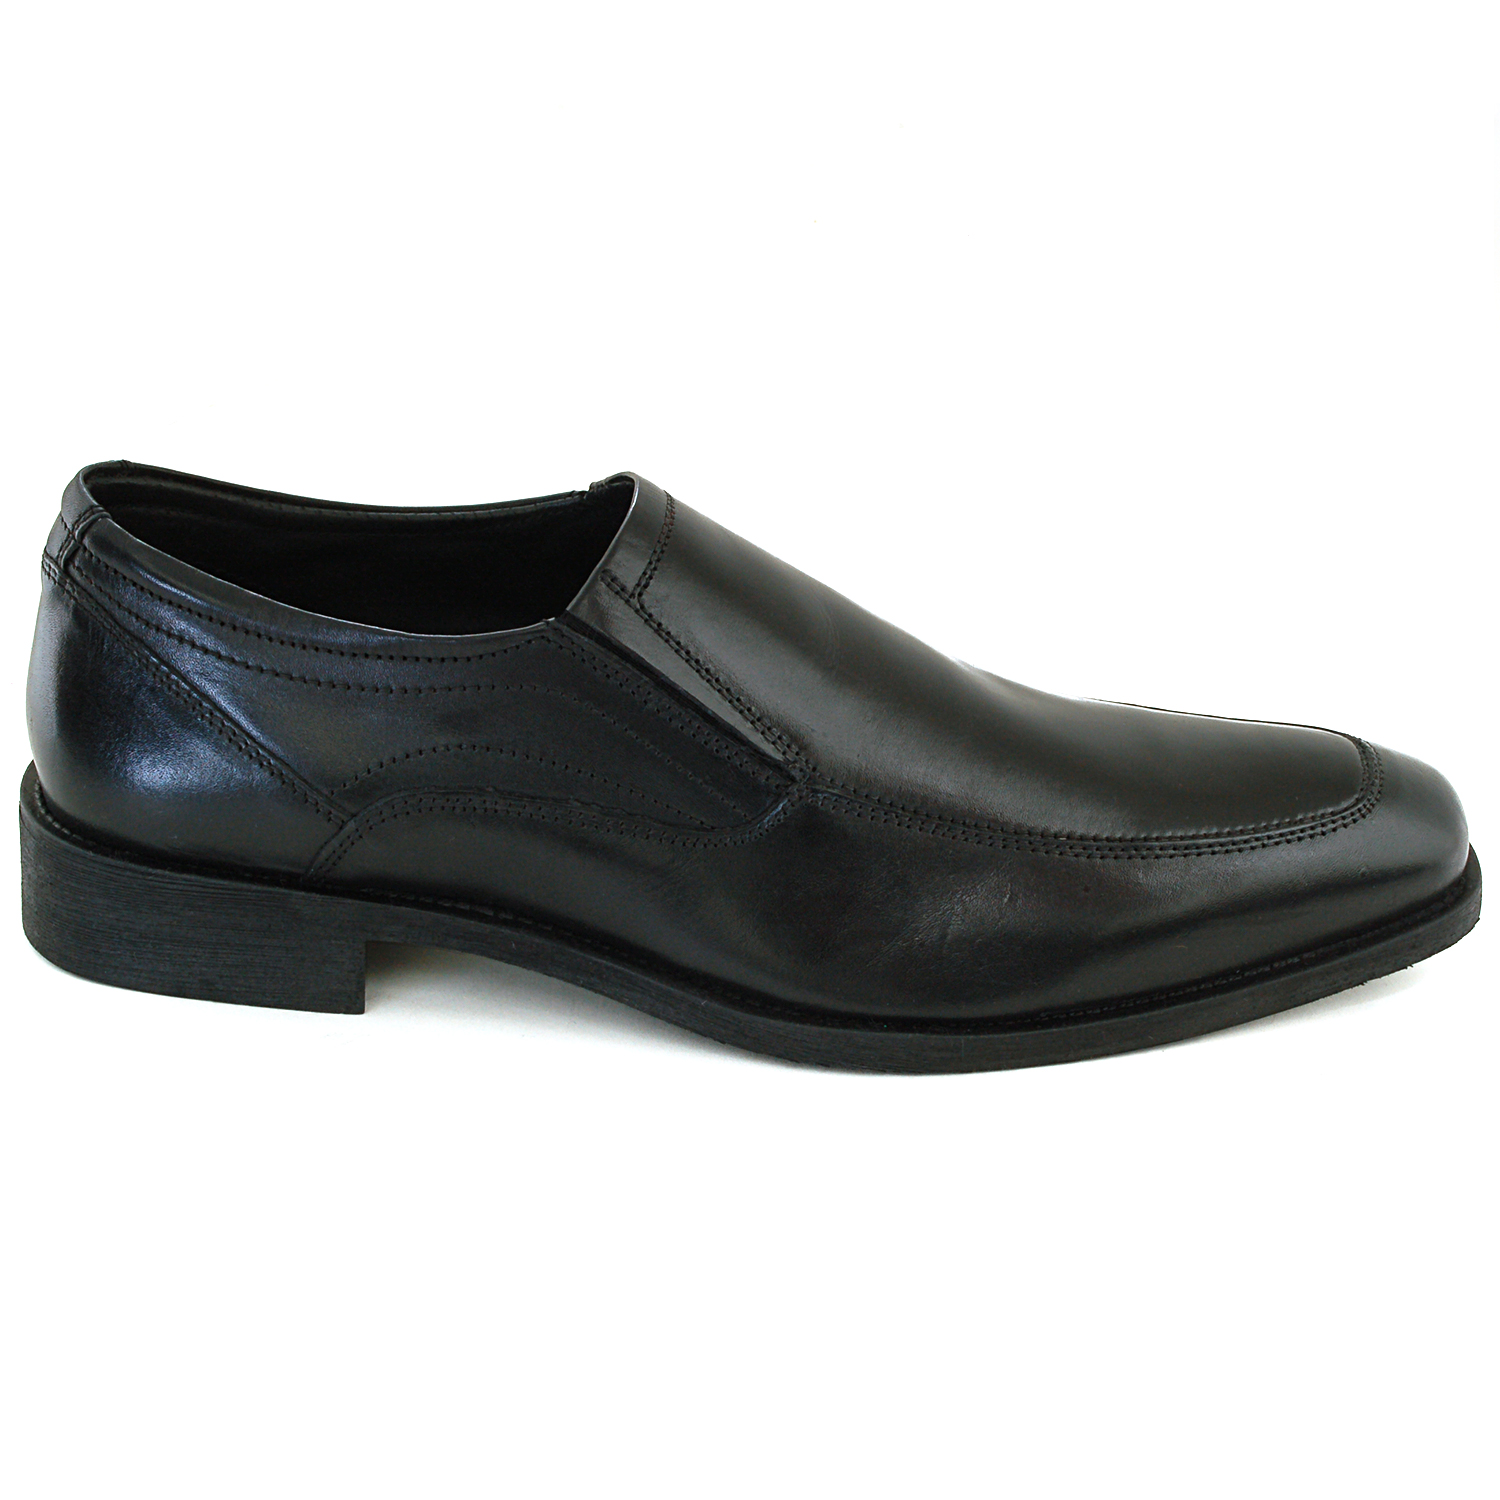 s dress shoes leather slip on dressy casual comfort